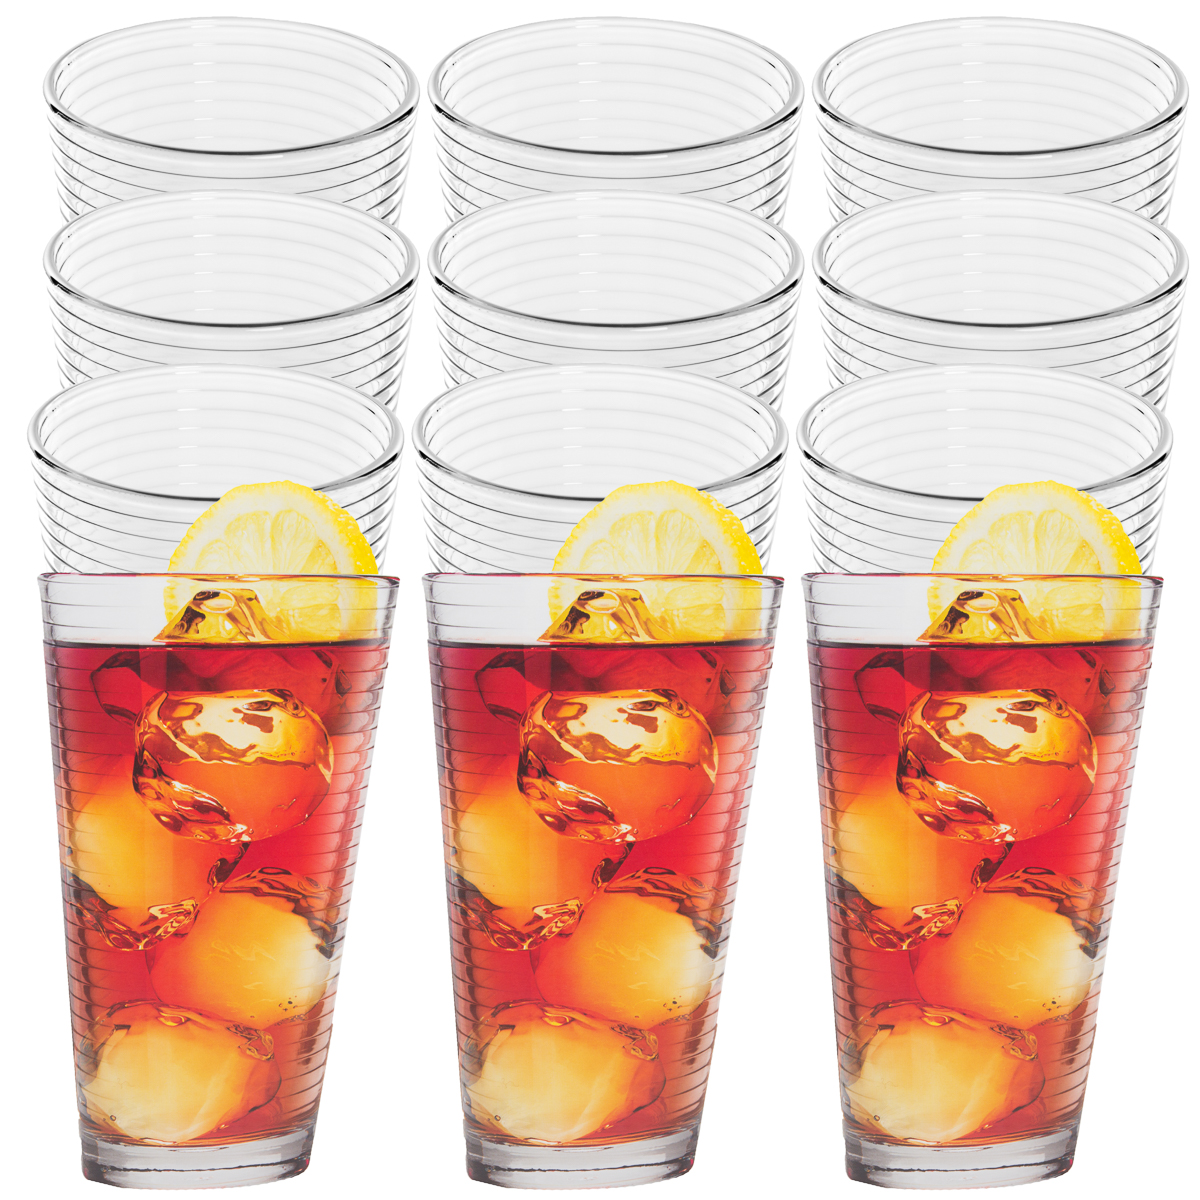 12pk Anchor Hocking 14oz Thick Drinking Glasses Set Clear Glass Beverage Tumbler by